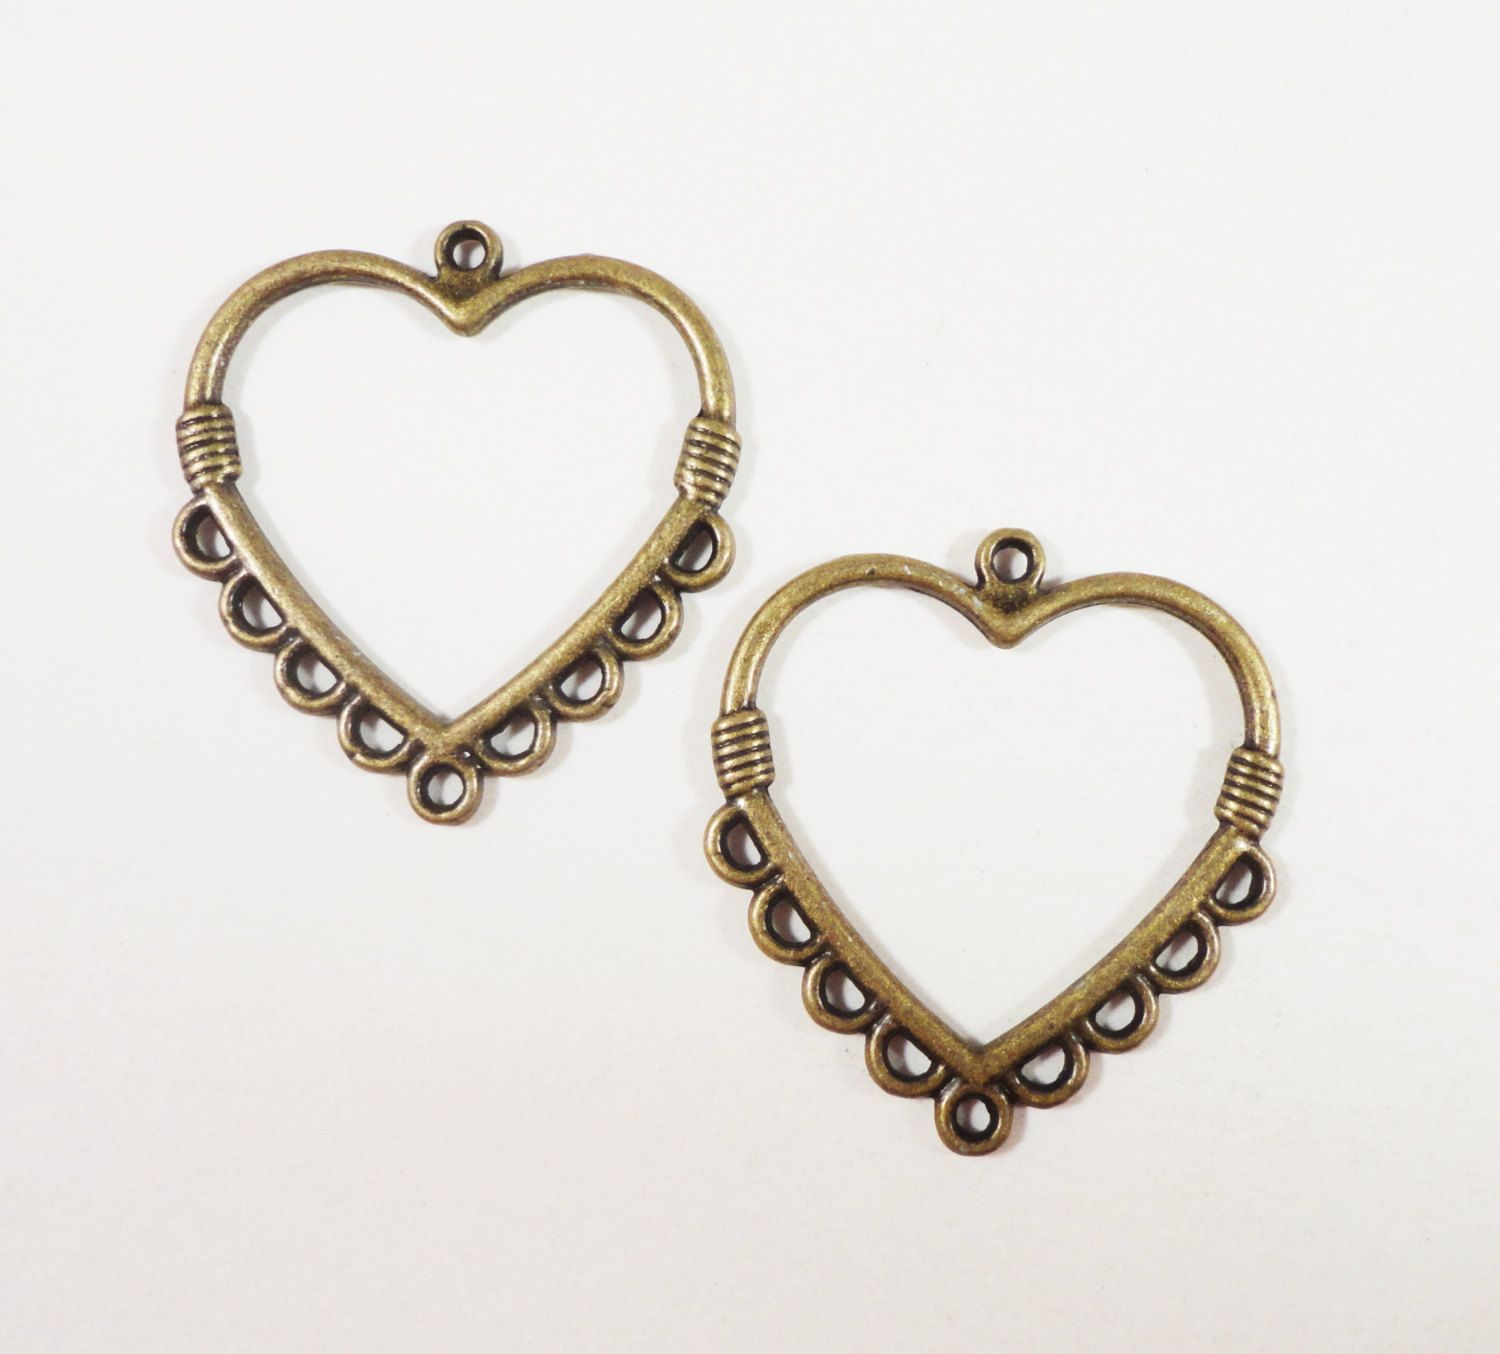 Bronze heart earring findings 28x25mm antique brass heart connector bronze heart earring findings 28x25mm antique brass heart connector pendants 9 to 1 chandelier earring connectors earring parts 6pcs arubaitofo Image collections